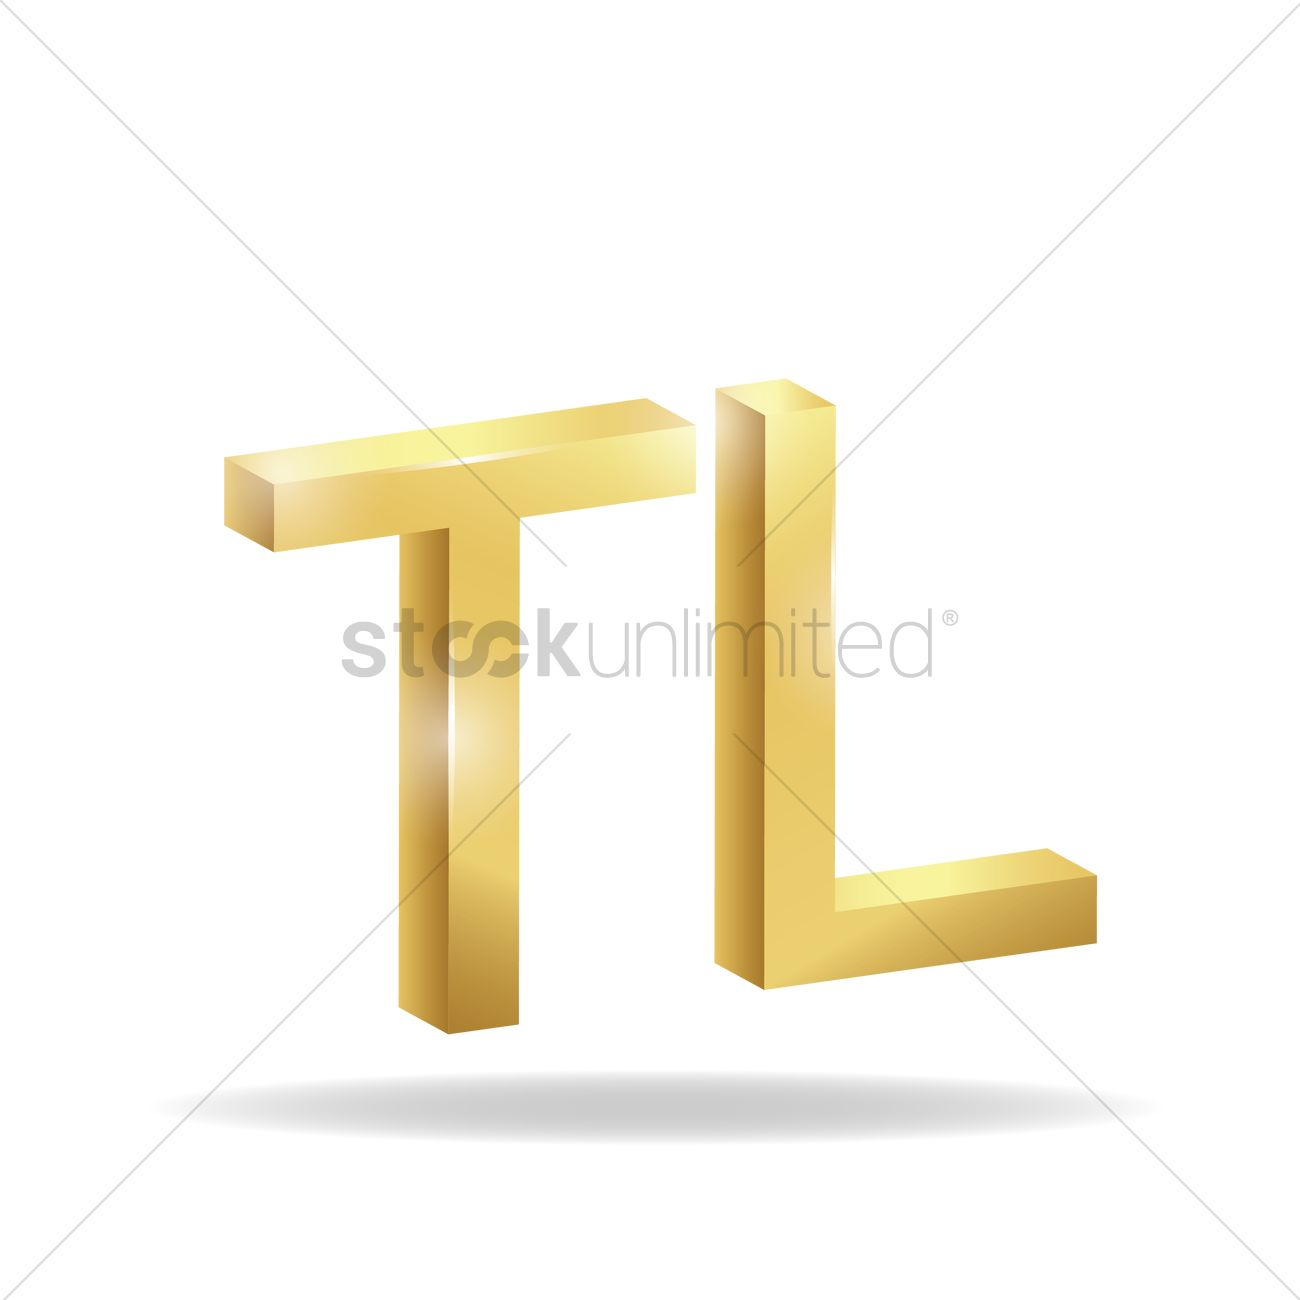 3d turkish lira currency symbol vector image 1827791 3d turkish lira currency symbol vector graphic biocorpaavc Images